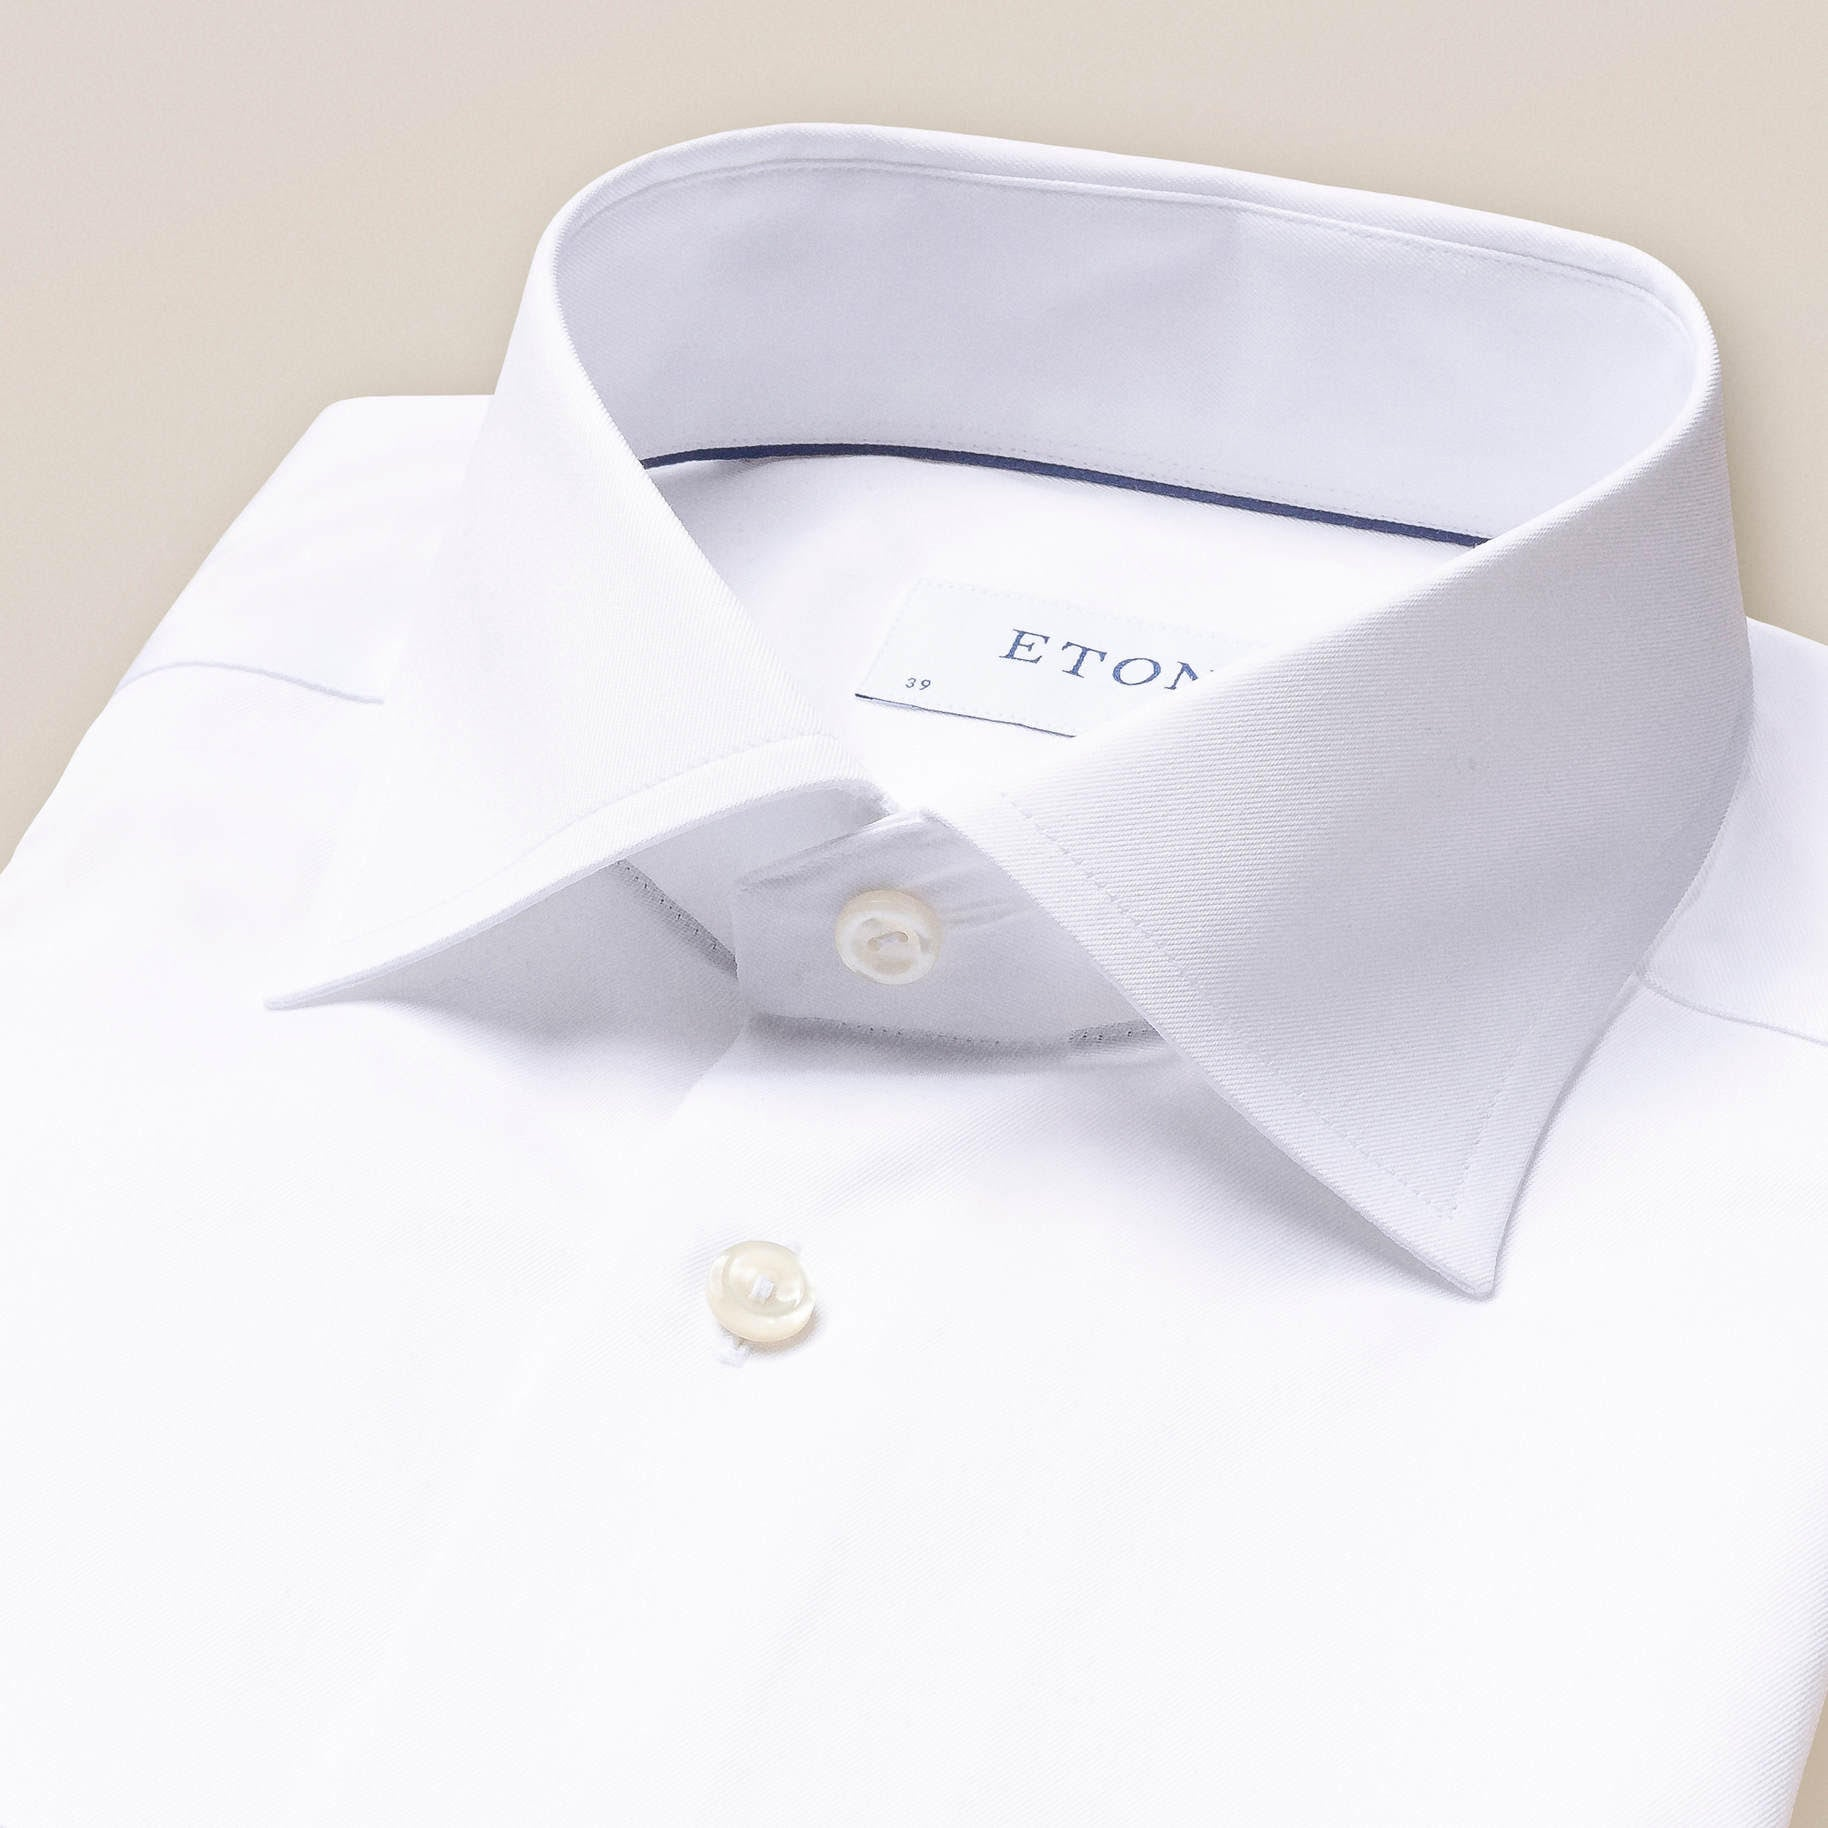 Eton - Slim Fit - White shirt - signature twill